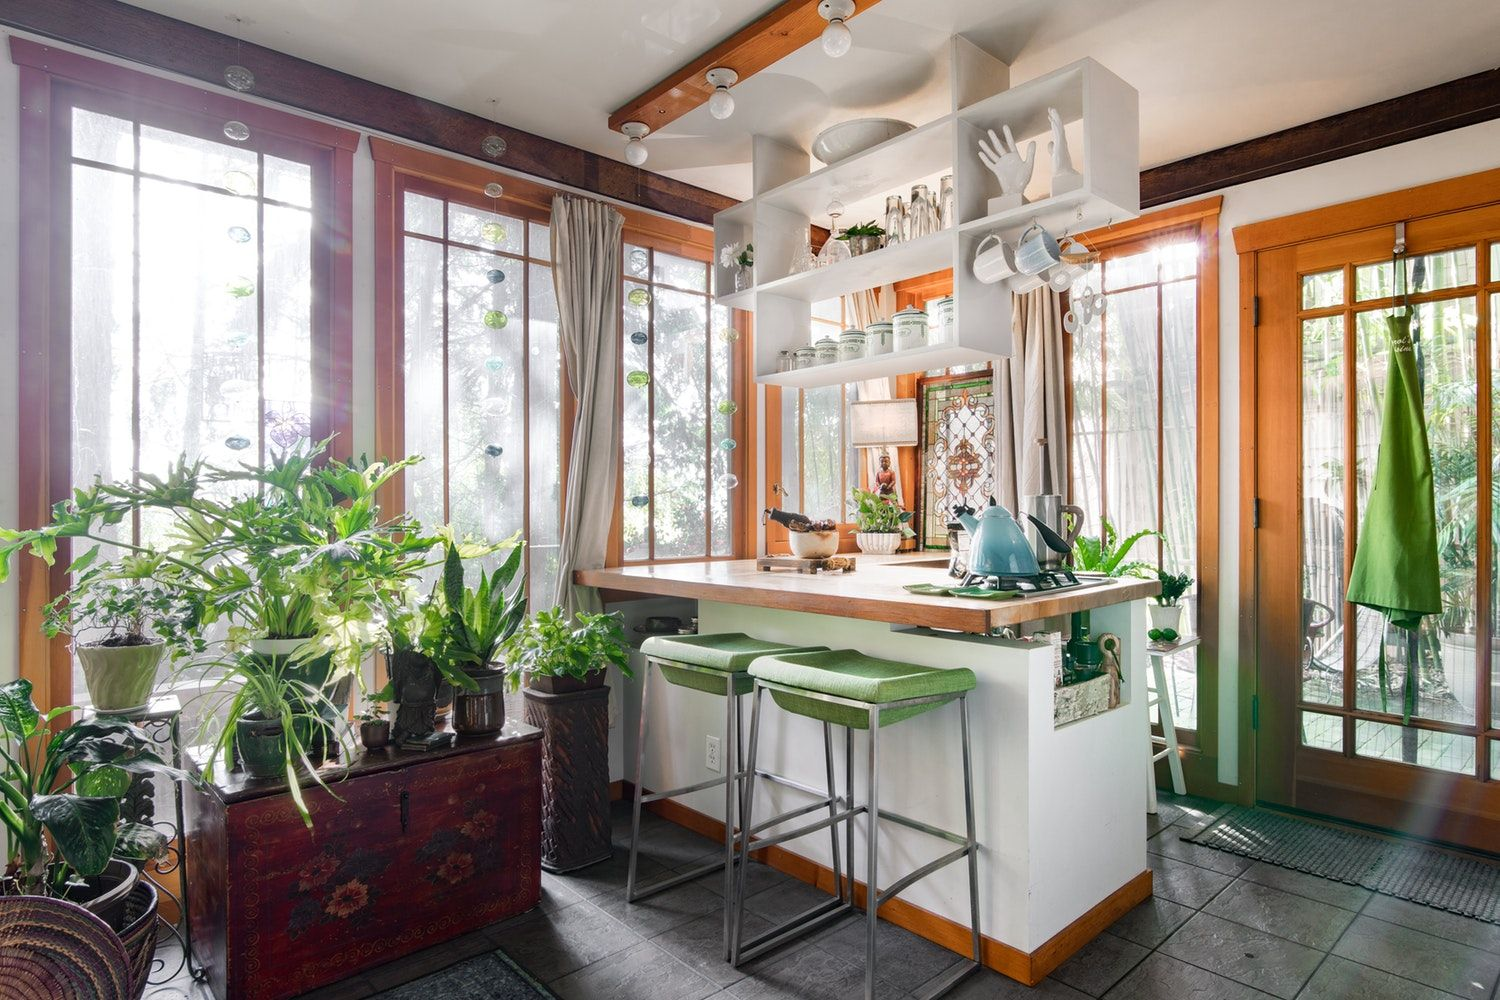 This 450 Square Foot Apartment Is Incredibly Bright Despite Being At Basement Level Small Basement Design Small Basement Apartments Basement Apartment